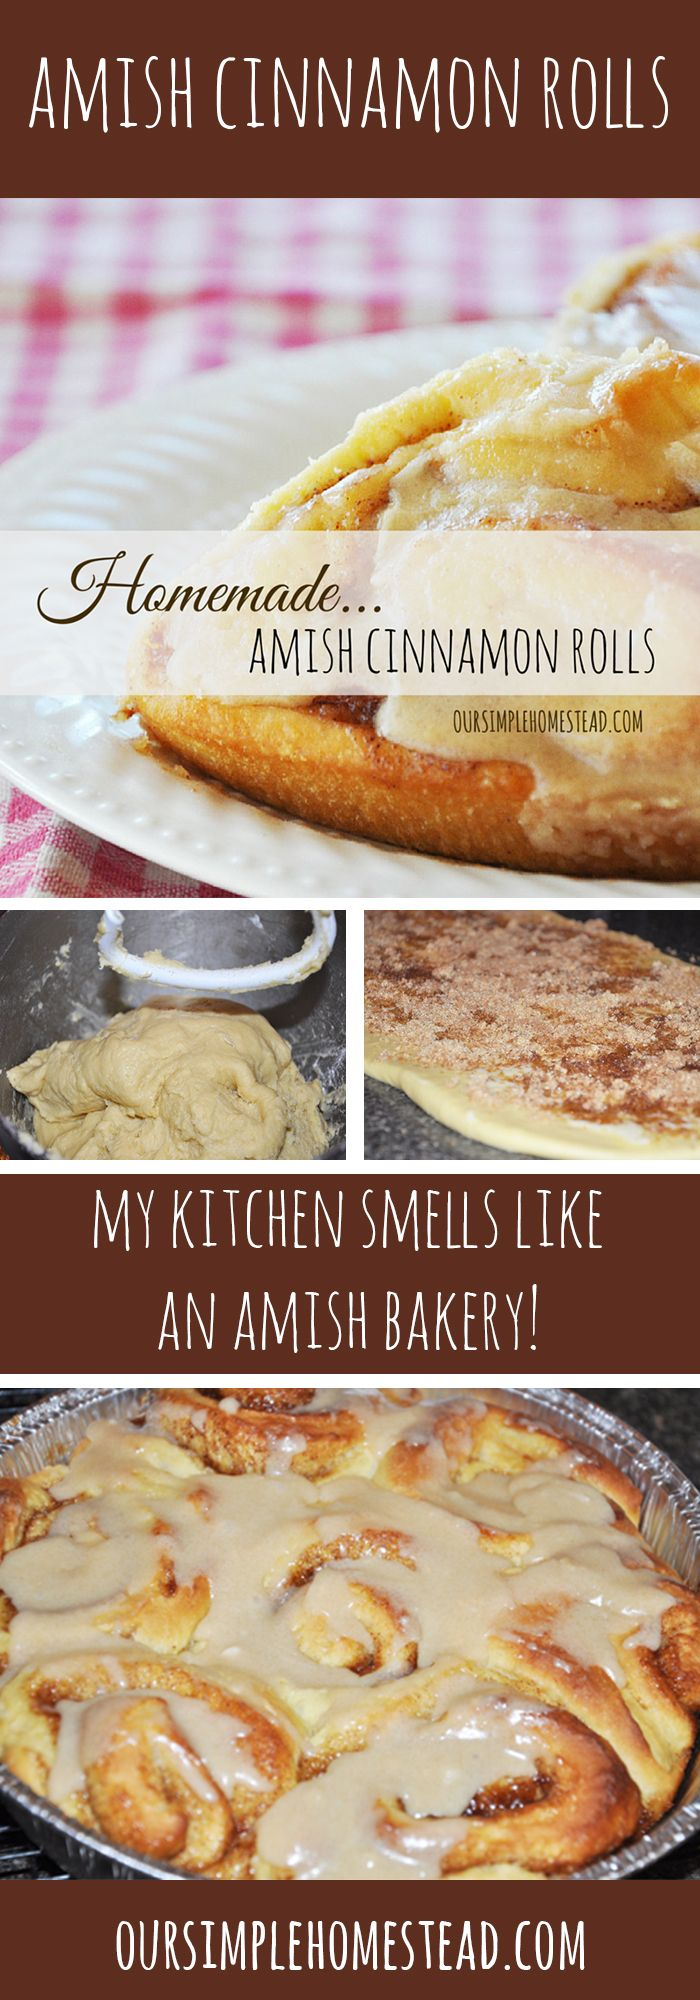 Amish Cinnamon Rolls My House Smells Like An Amish